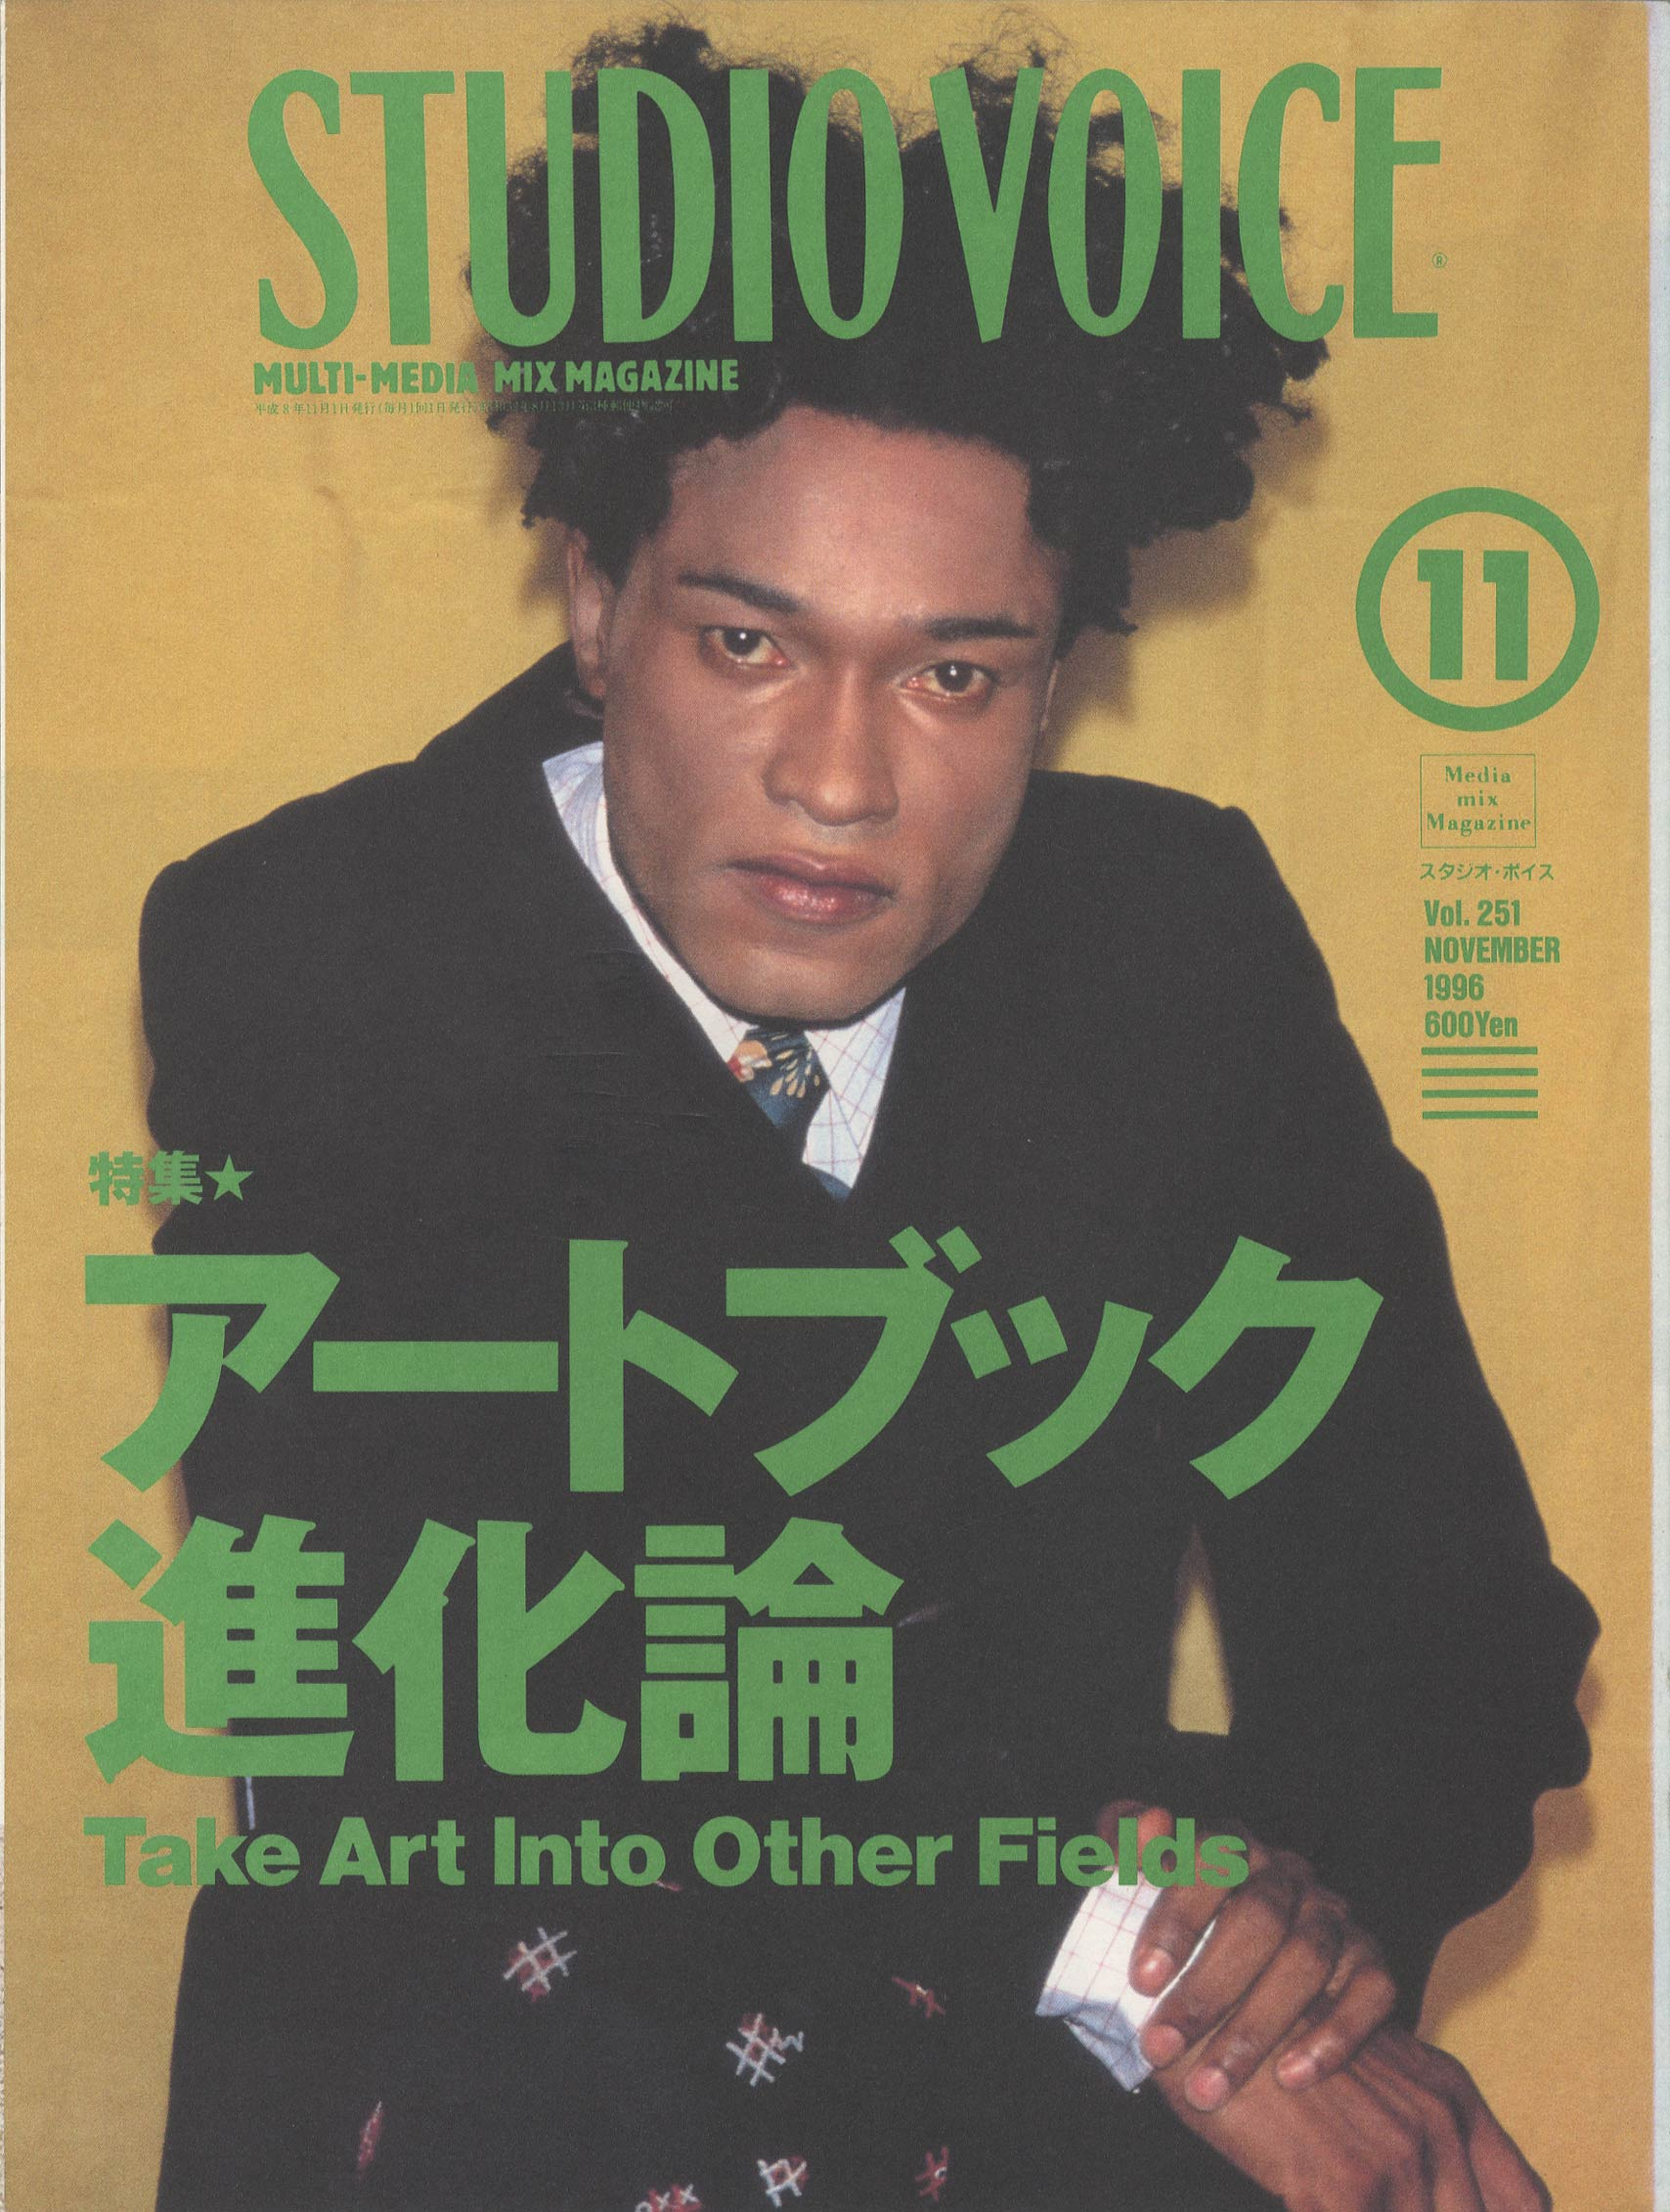 STUDIO VOICE MULTI-MEDIA MIX MAGAZINE/スタジオ・ボイス 1996年11月号 Vol.251[image1]